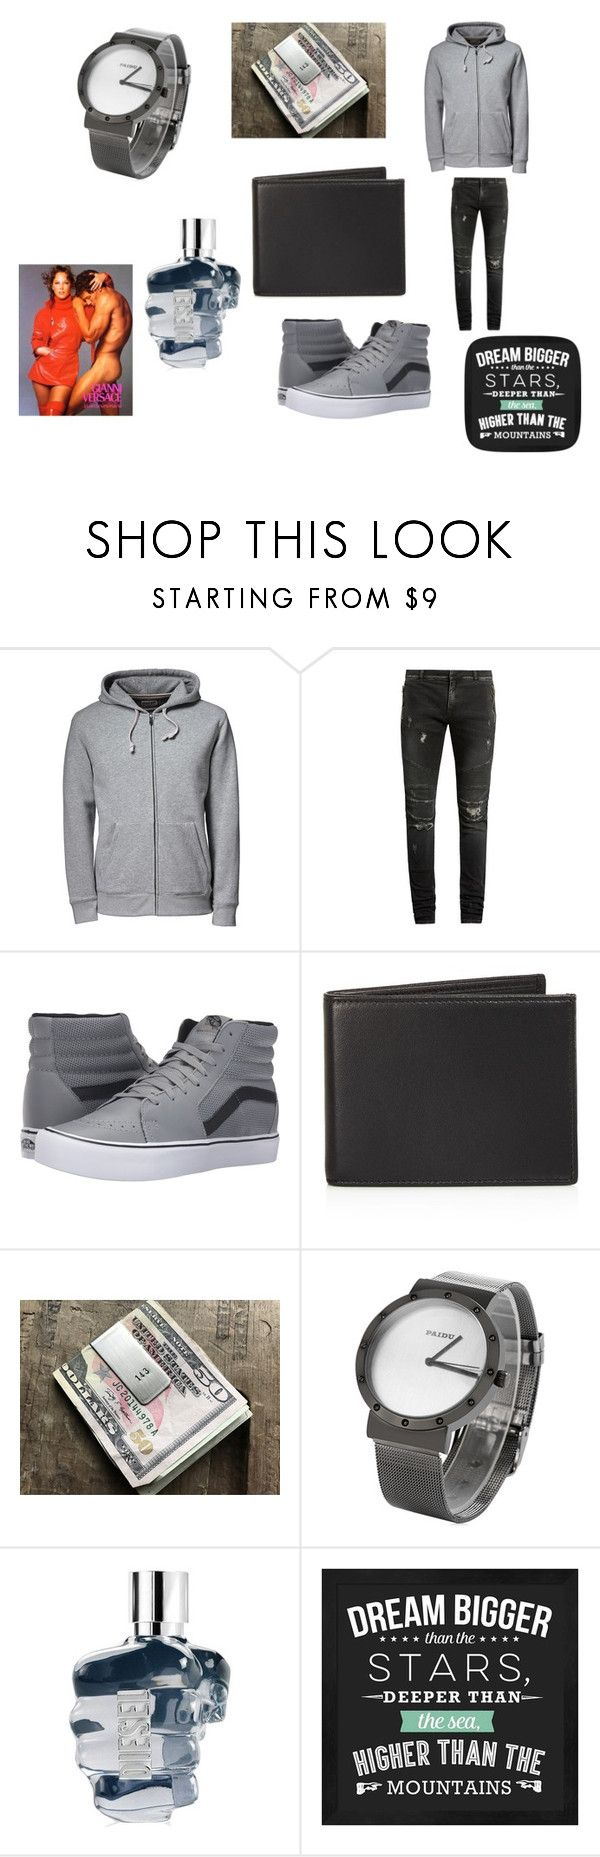 """Thor and Hercules"" by nadaanja ❤ liked on Polyvore featuring Lands' End, Balmain, Vans, The Men's Store, Diesel, men's fashion and menswear"